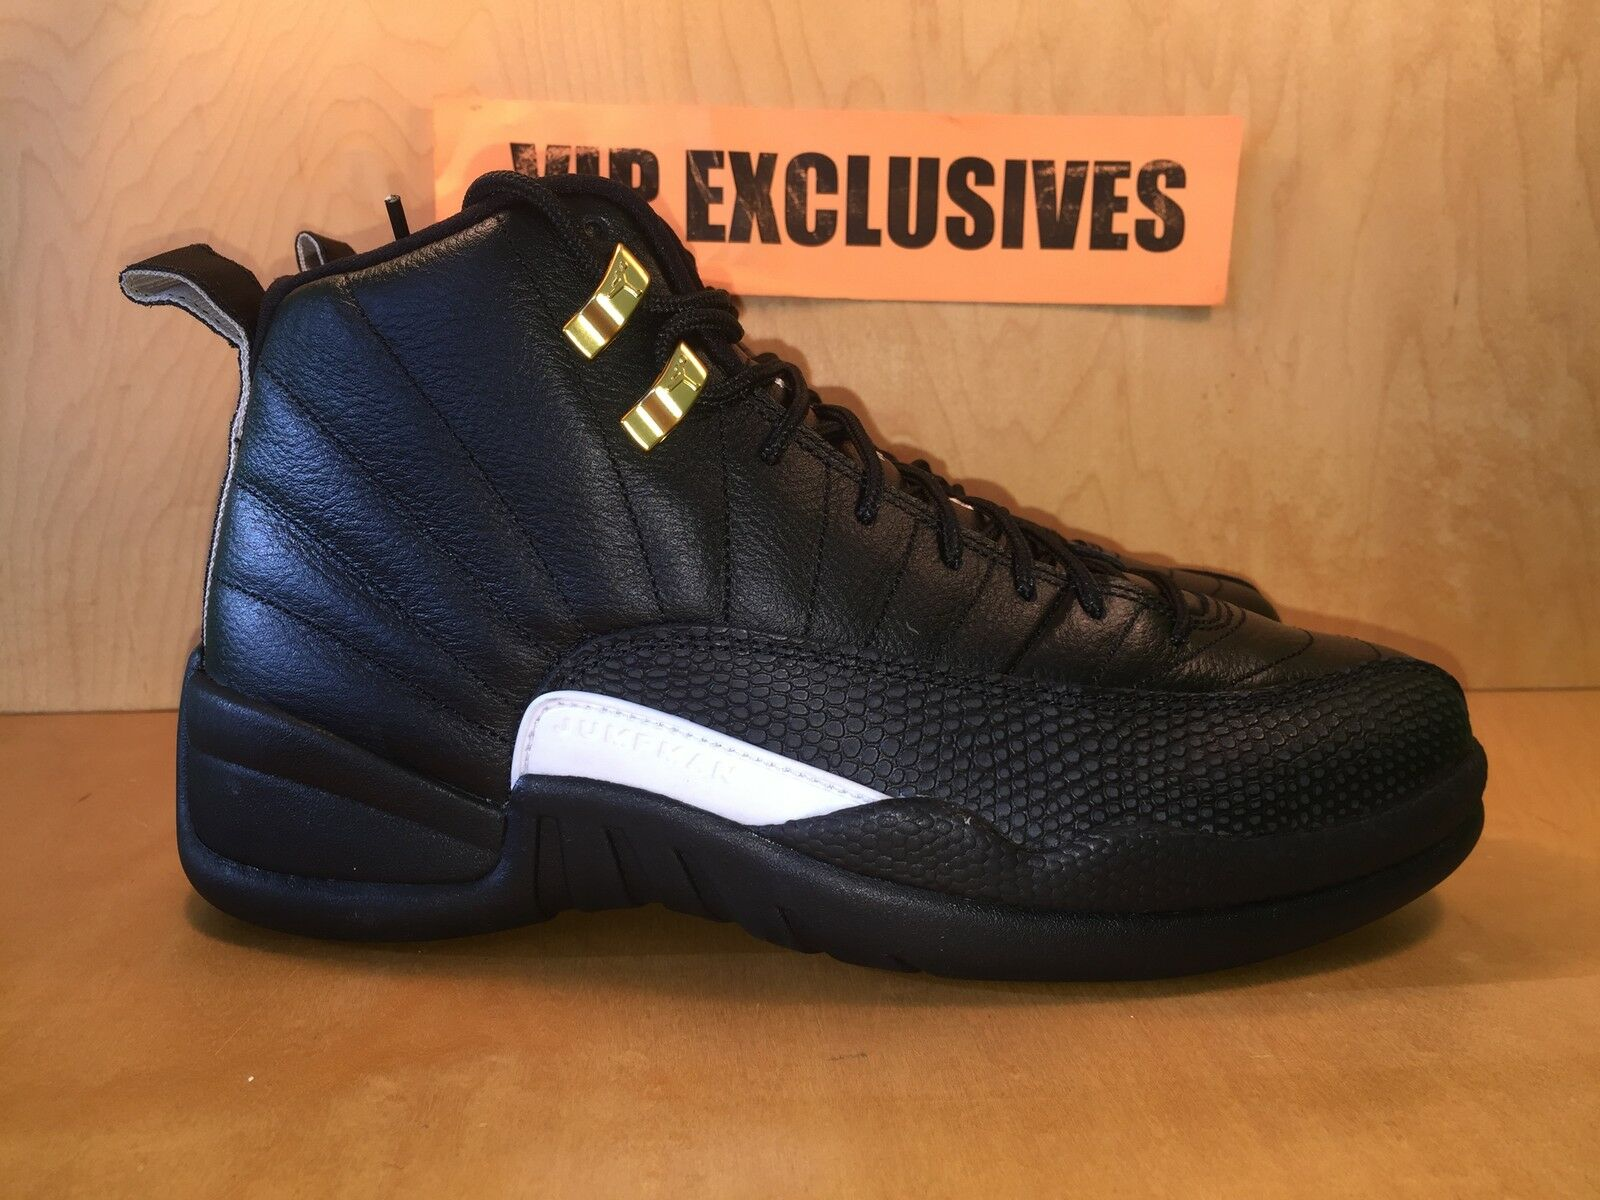 Nike Air Jordan XII Retro 12 The Master Black Rattan White Gold 130690-013 New shoes for men and women, limited time discount